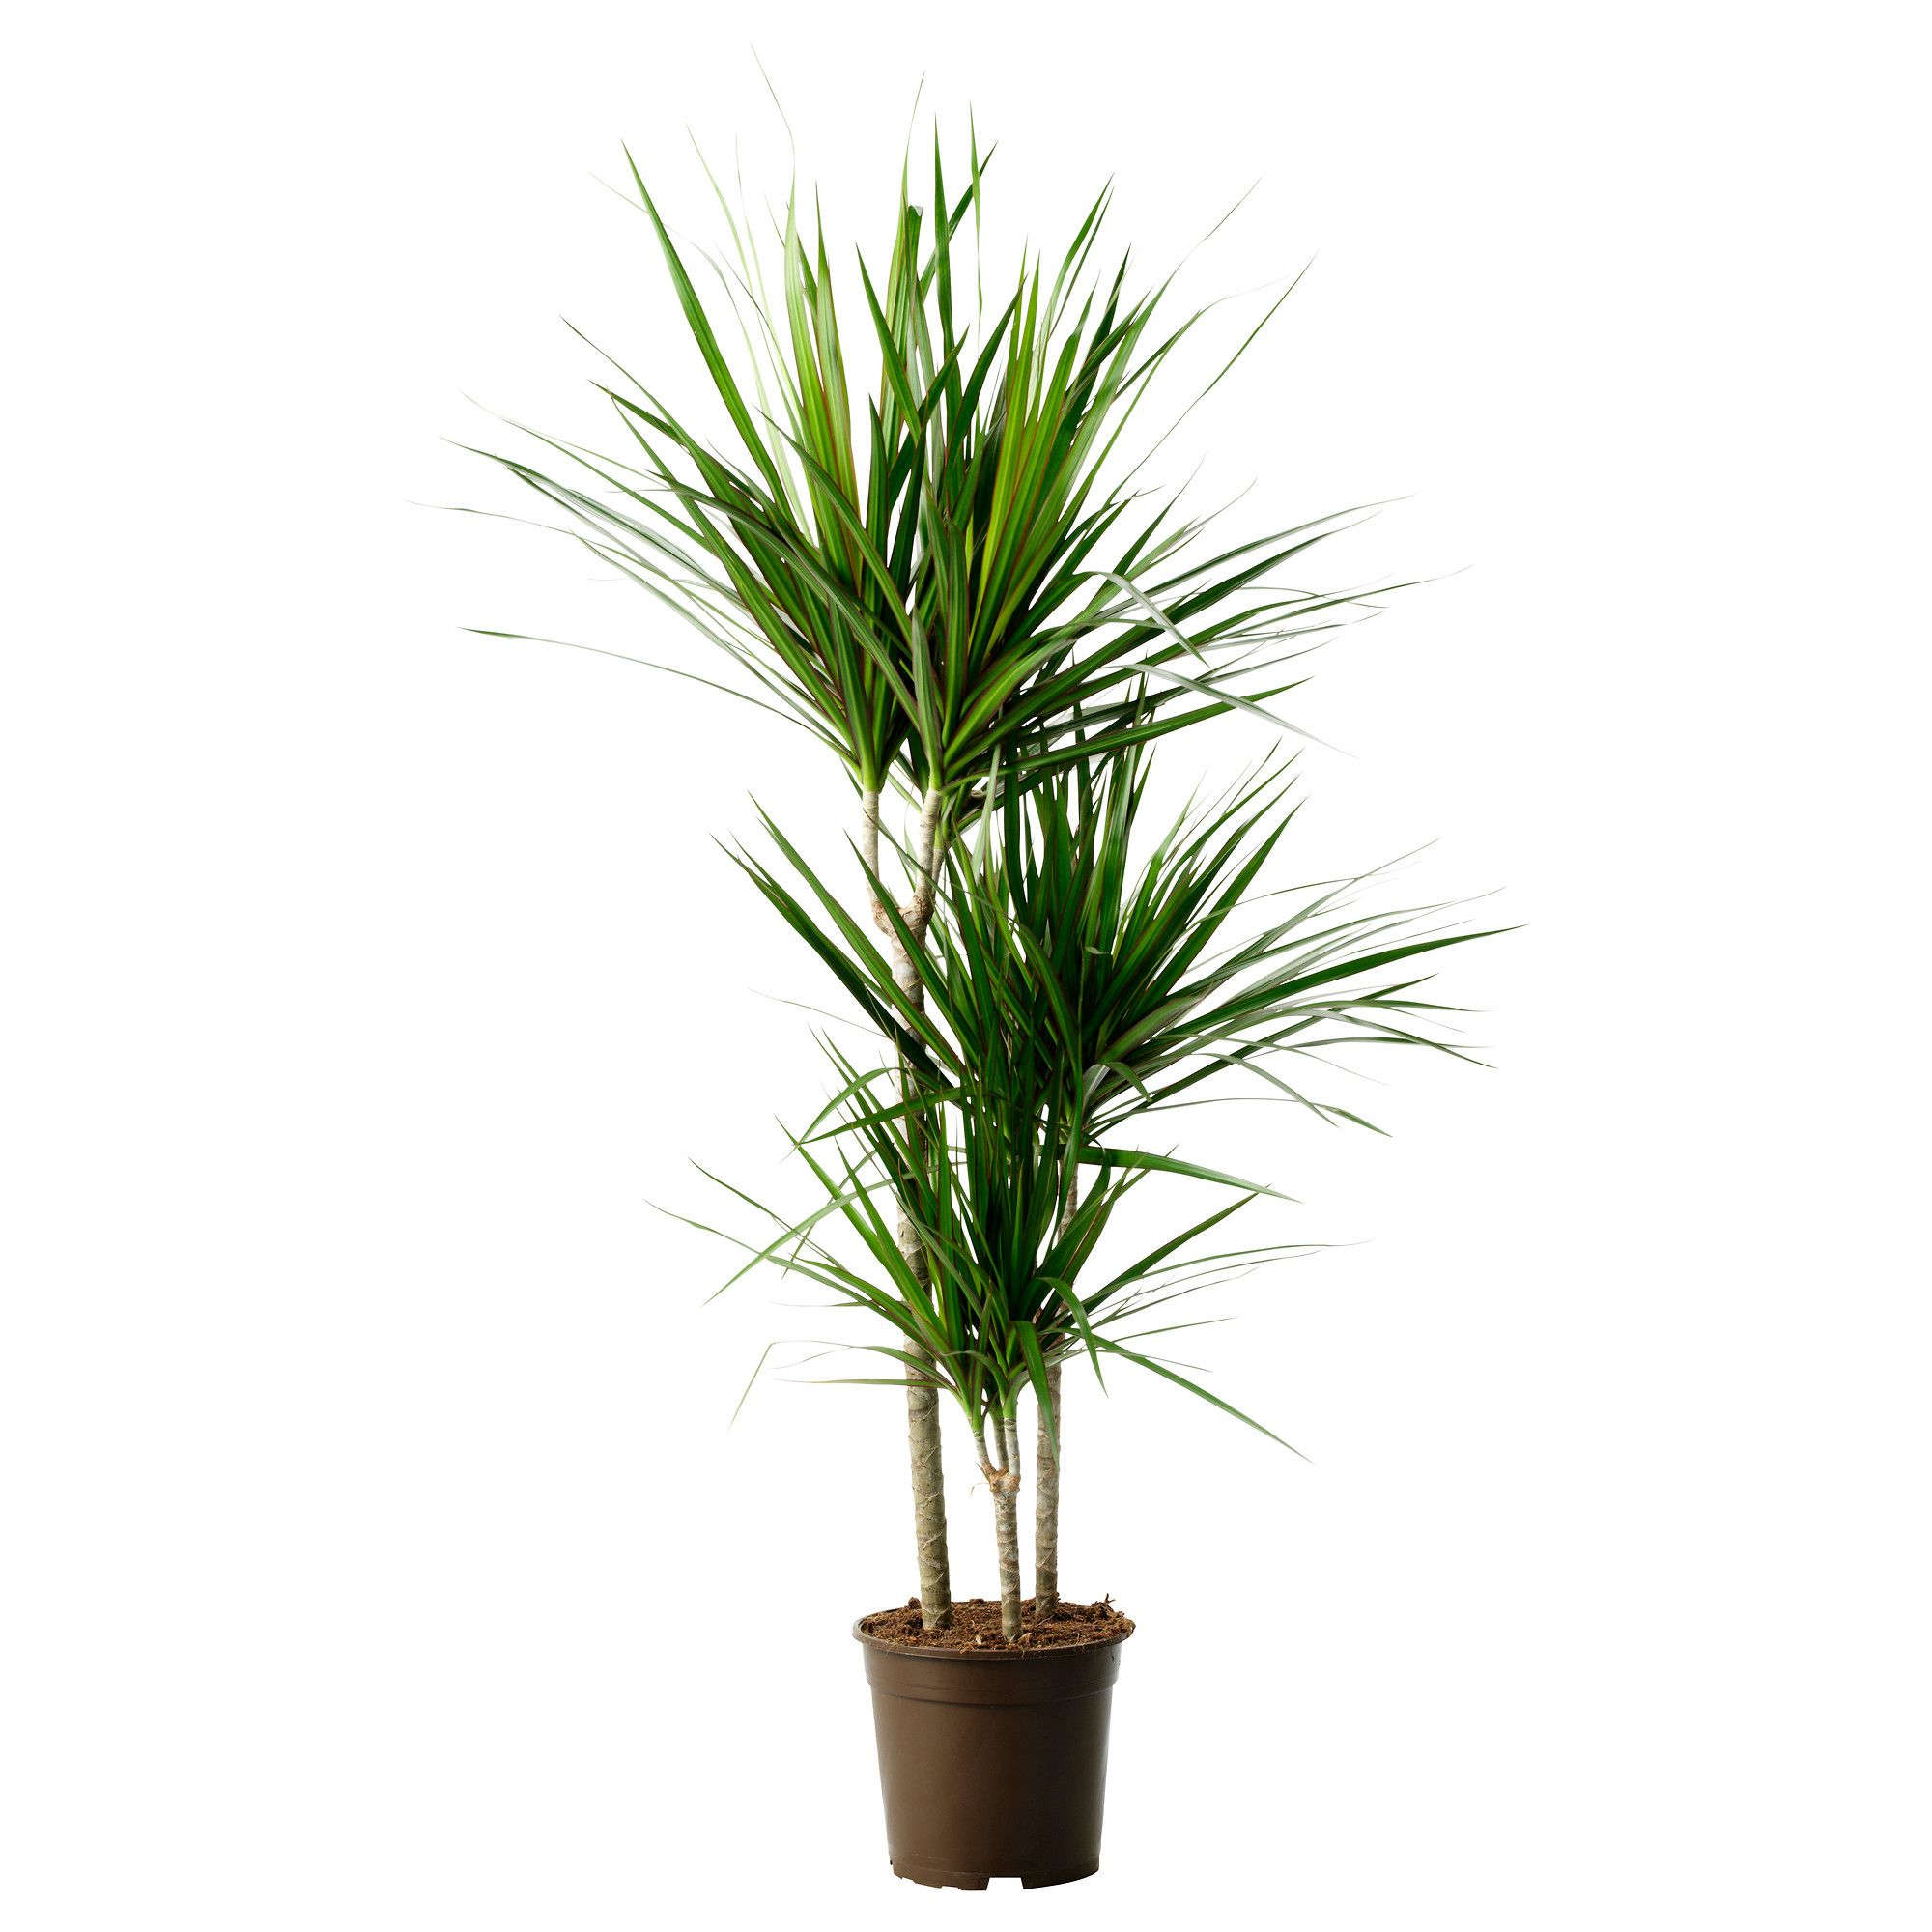 dracaena marginata plante en pot dragonnier de madagascar 3 tiges plante verte ikea plantes. Black Bedroom Furniture Sets. Home Design Ideas